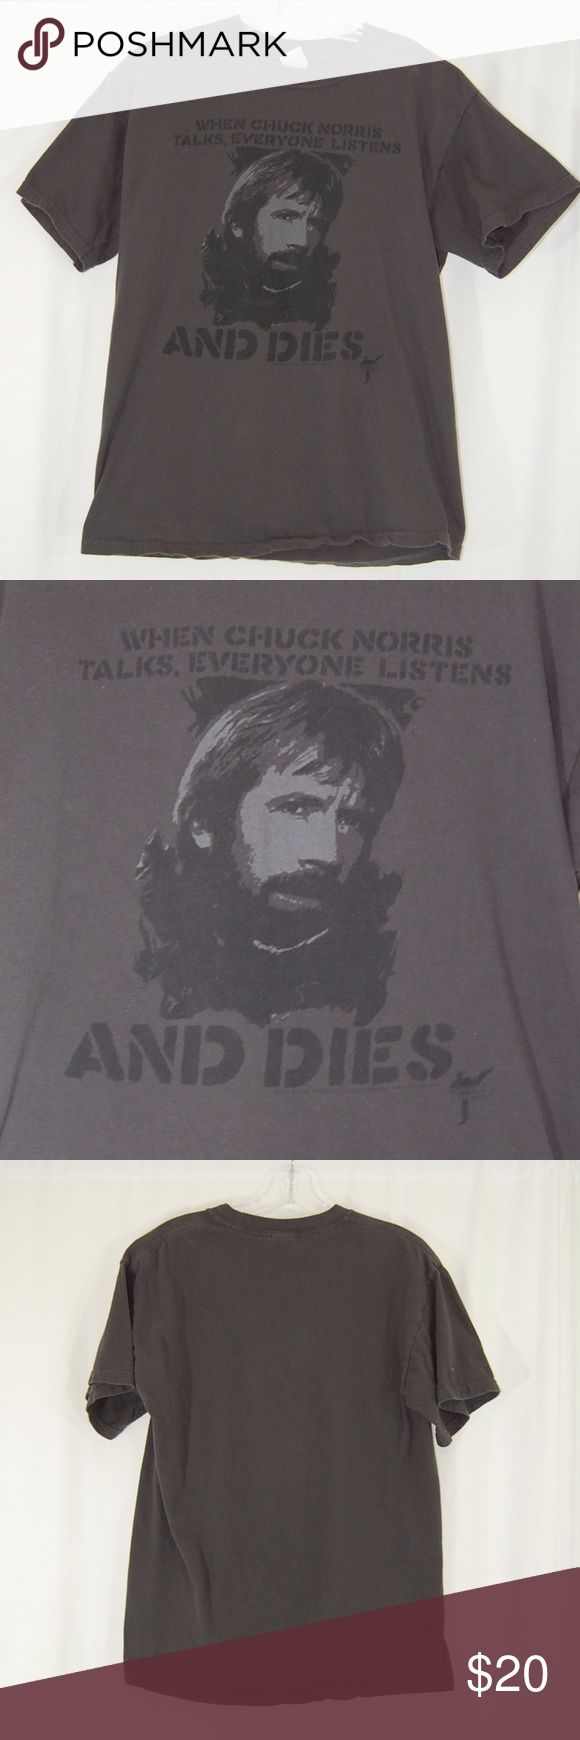 "🆕 Chuck Norris 'Everyone Dies' T-shirt (UNISEX) Classic short sleeve t-shirt. Medium thickness (not super thin). 100% Cotton. Dark gray-ish color (with almost a hint of brown or black to it).   ""When Chuck Norris talks, everyone listens... and dies"" humor shirt.  Great condition - except there is some fading throughout the shirt - I think it adds to the look, though.  Men's size Medium - looks great on ladies too (unisex tee).  Approximate measurements (taken flat): Bust/chest = 19"" Length…"